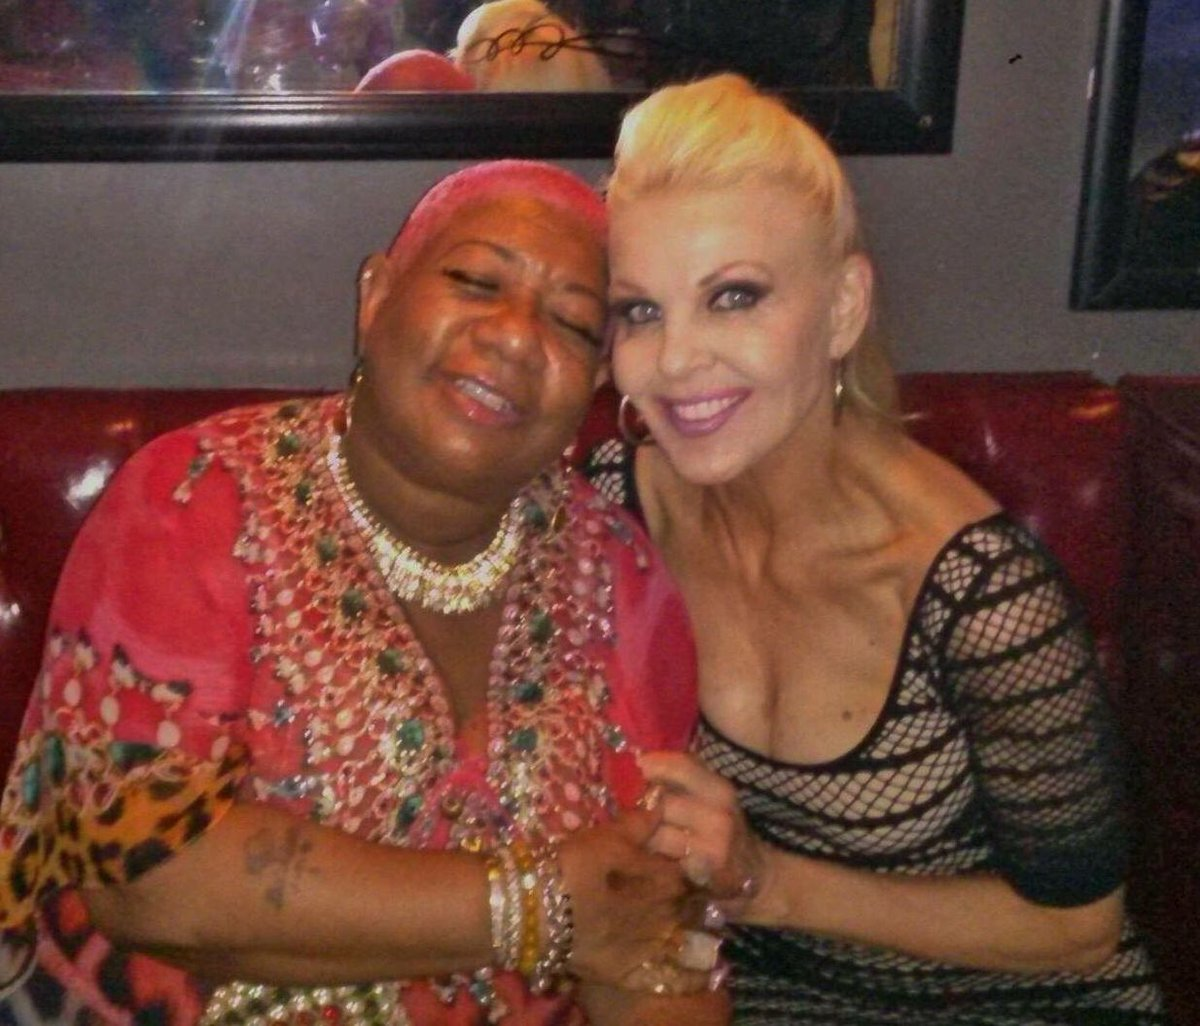 Amazing phone call last weekend. My girl @Luenell called from Buffalo on stage. The audience in Buffalo rocked and was so welcoming. We had a blast!!!!  #Buffalo #MJG #LuenellCampbell #Stage #audience #live #love #laugh #HeyLuenell